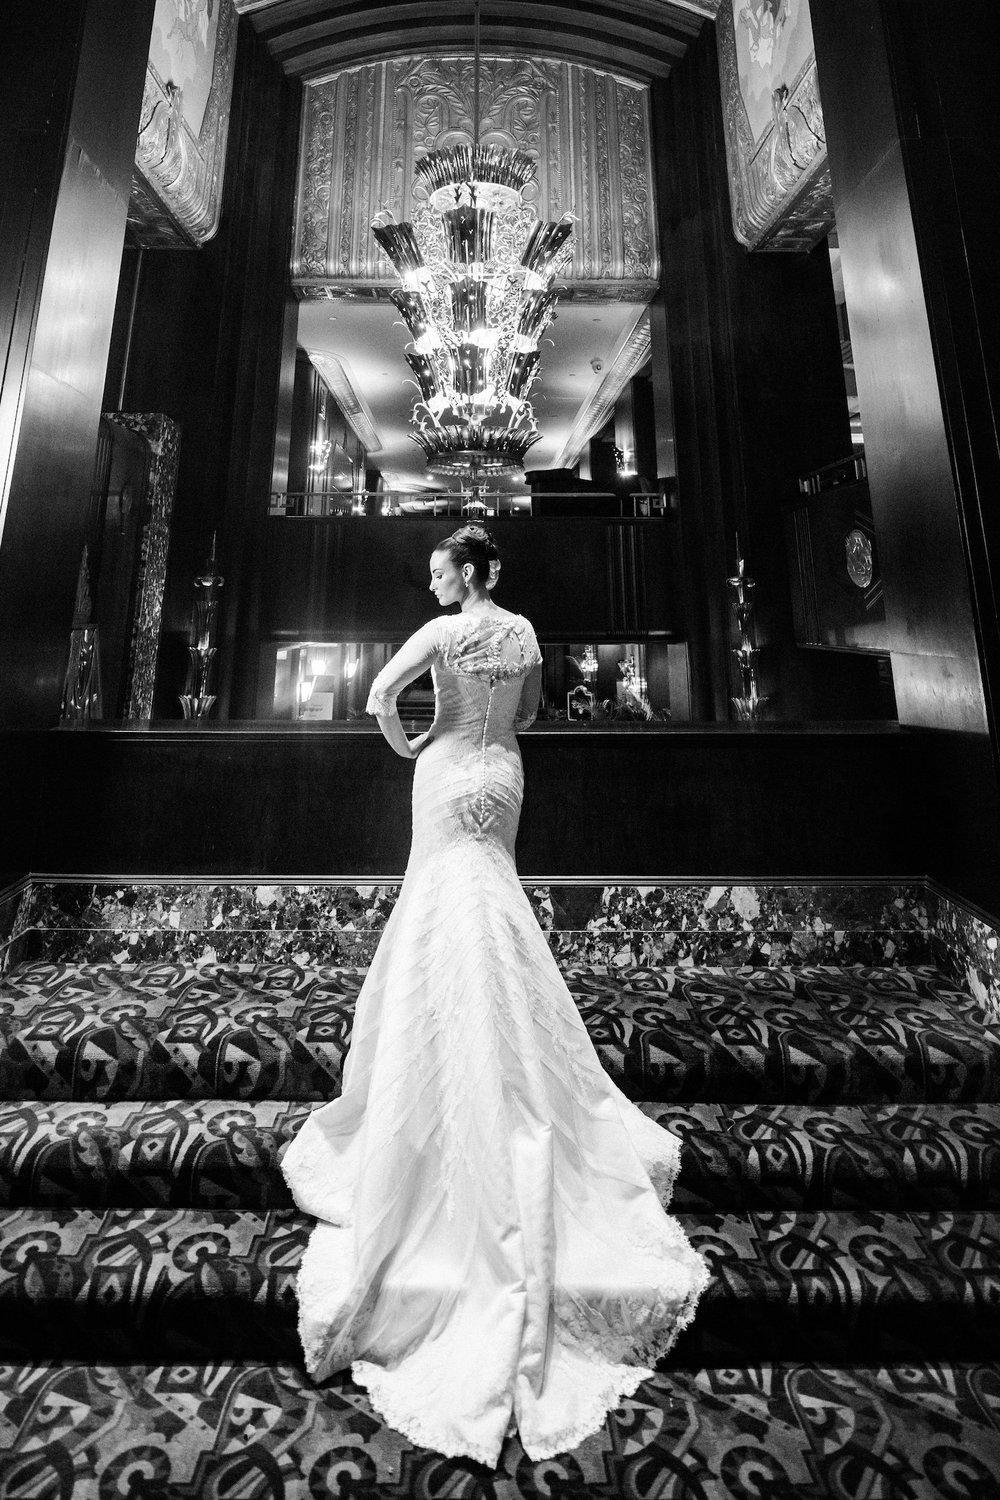 The Hilton Netherland Plaza Hotel Bride Cincinnati, Oh